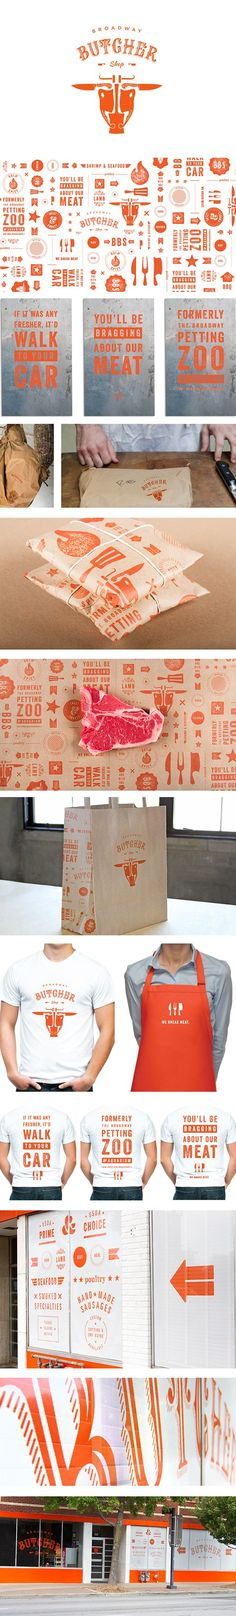 Broadway Butcher Shop on Behance